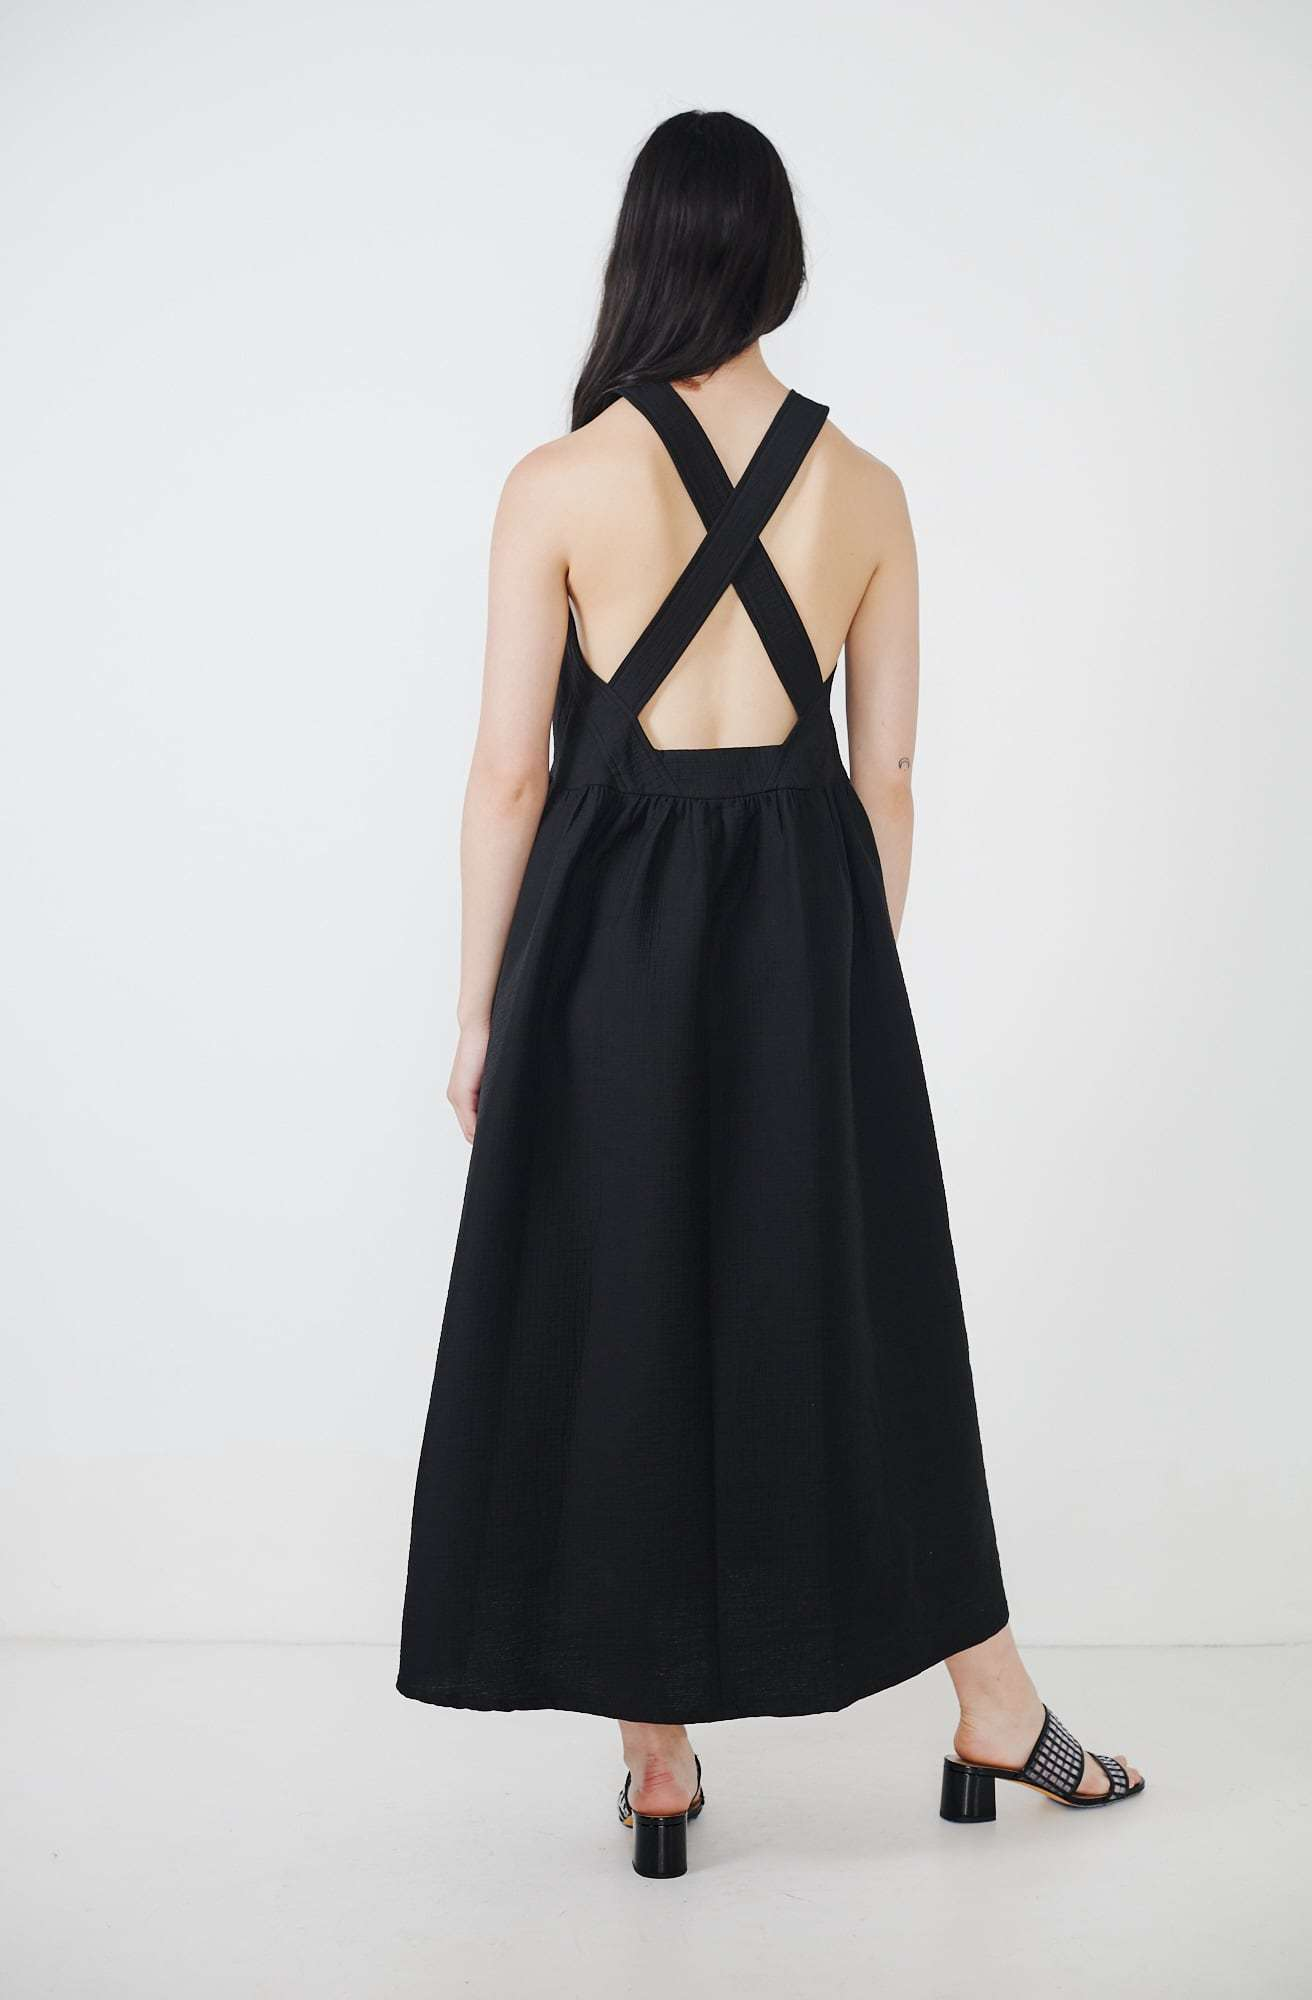 shop rachel comey clothing